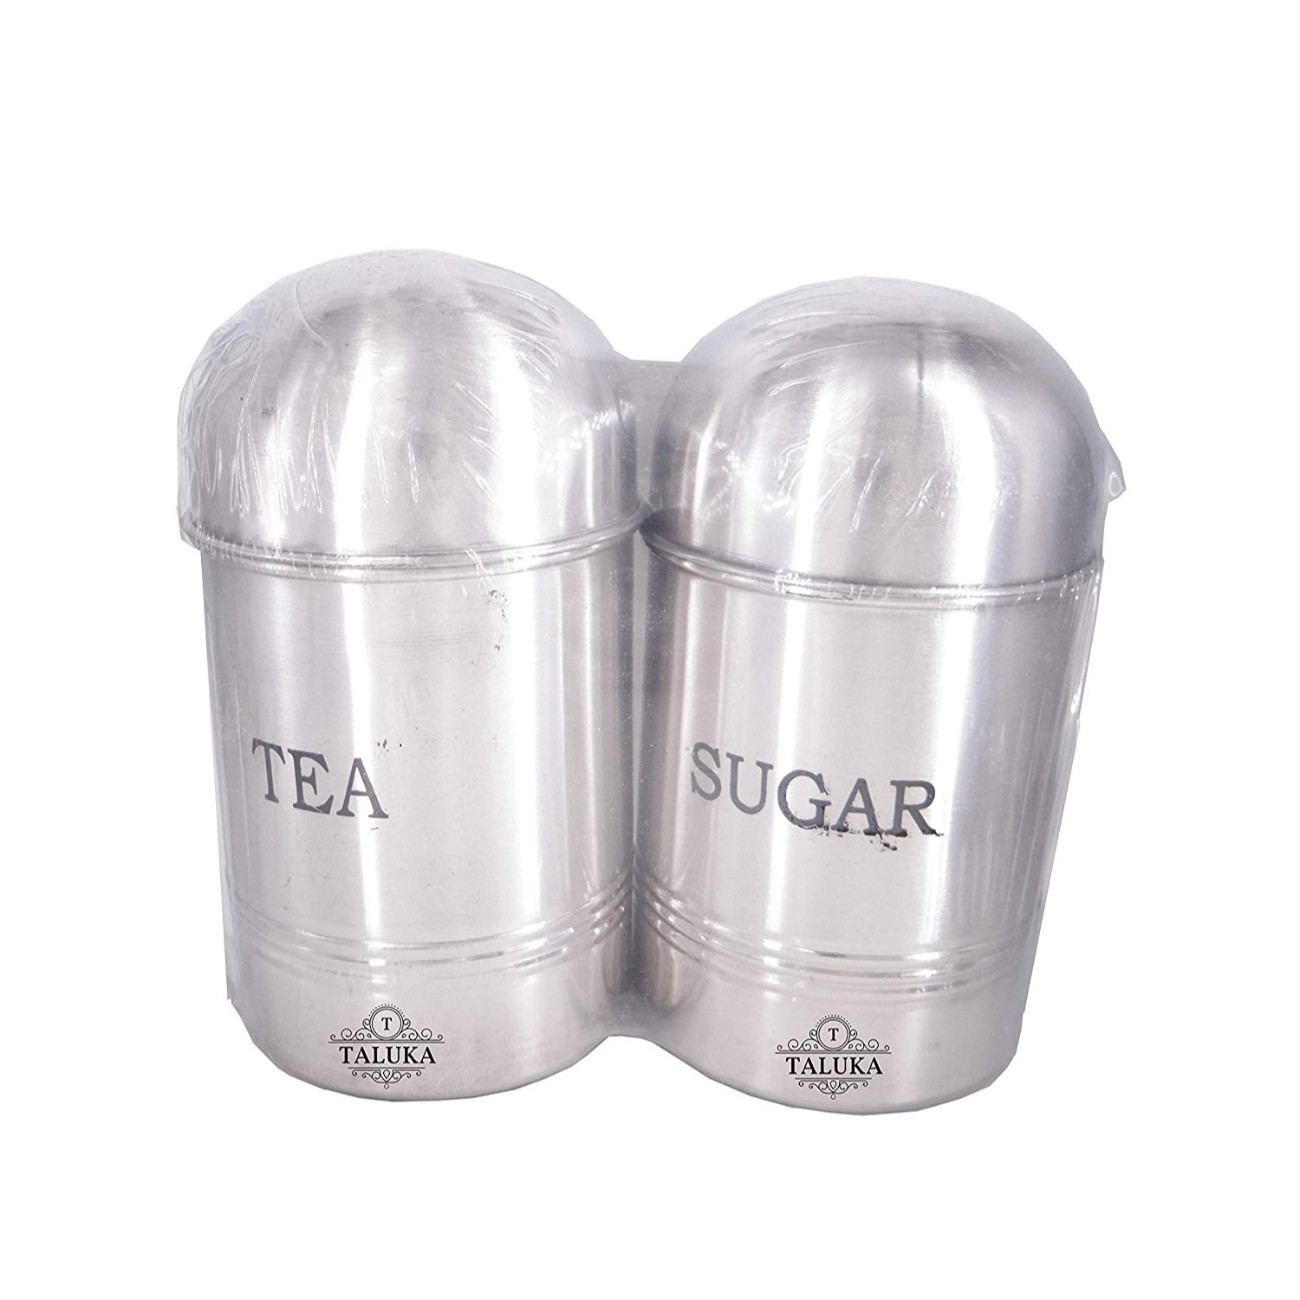 Stainless Steel Tea Sugar Canister 2 PC Set Kitchen Storage Jar Container